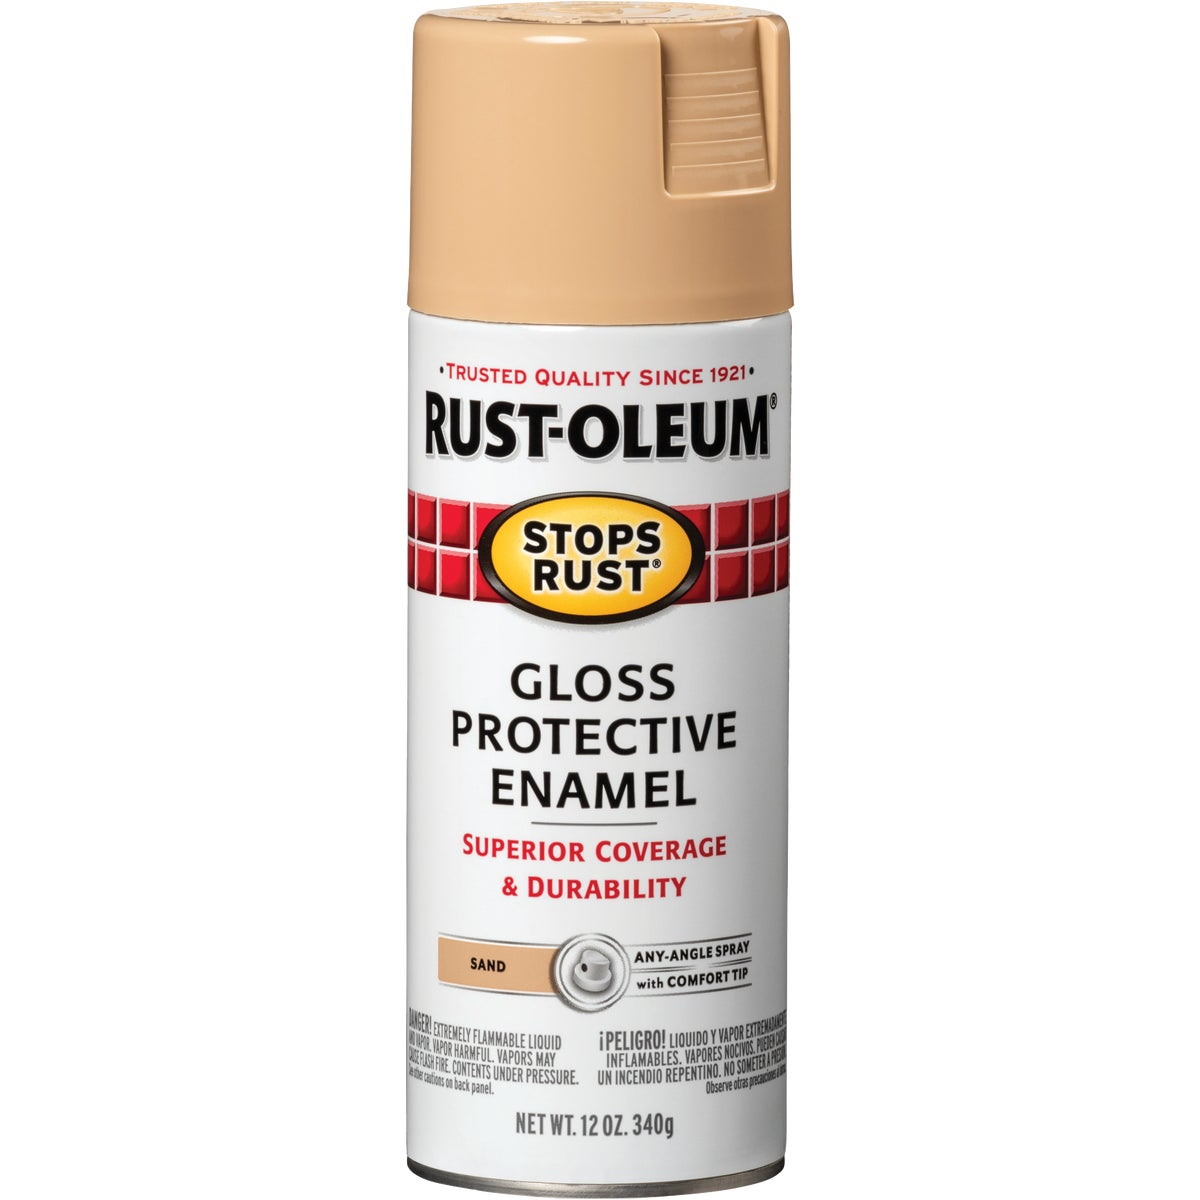 SAND SPRAY PAINT - 7771-830 by Rustoleum